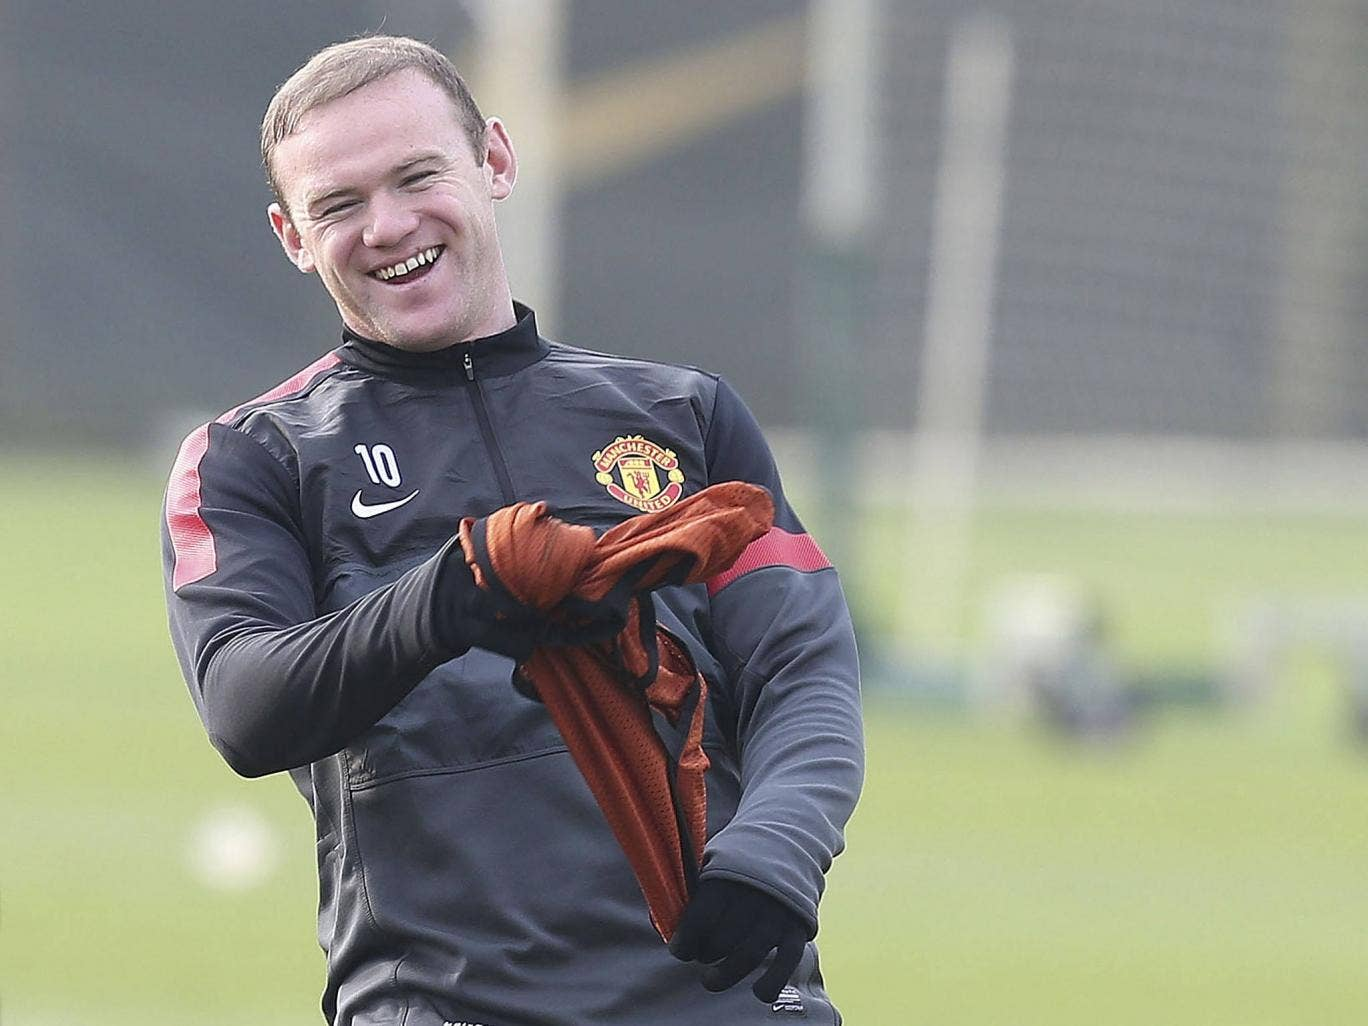 Wayne Rooney pictured training for United